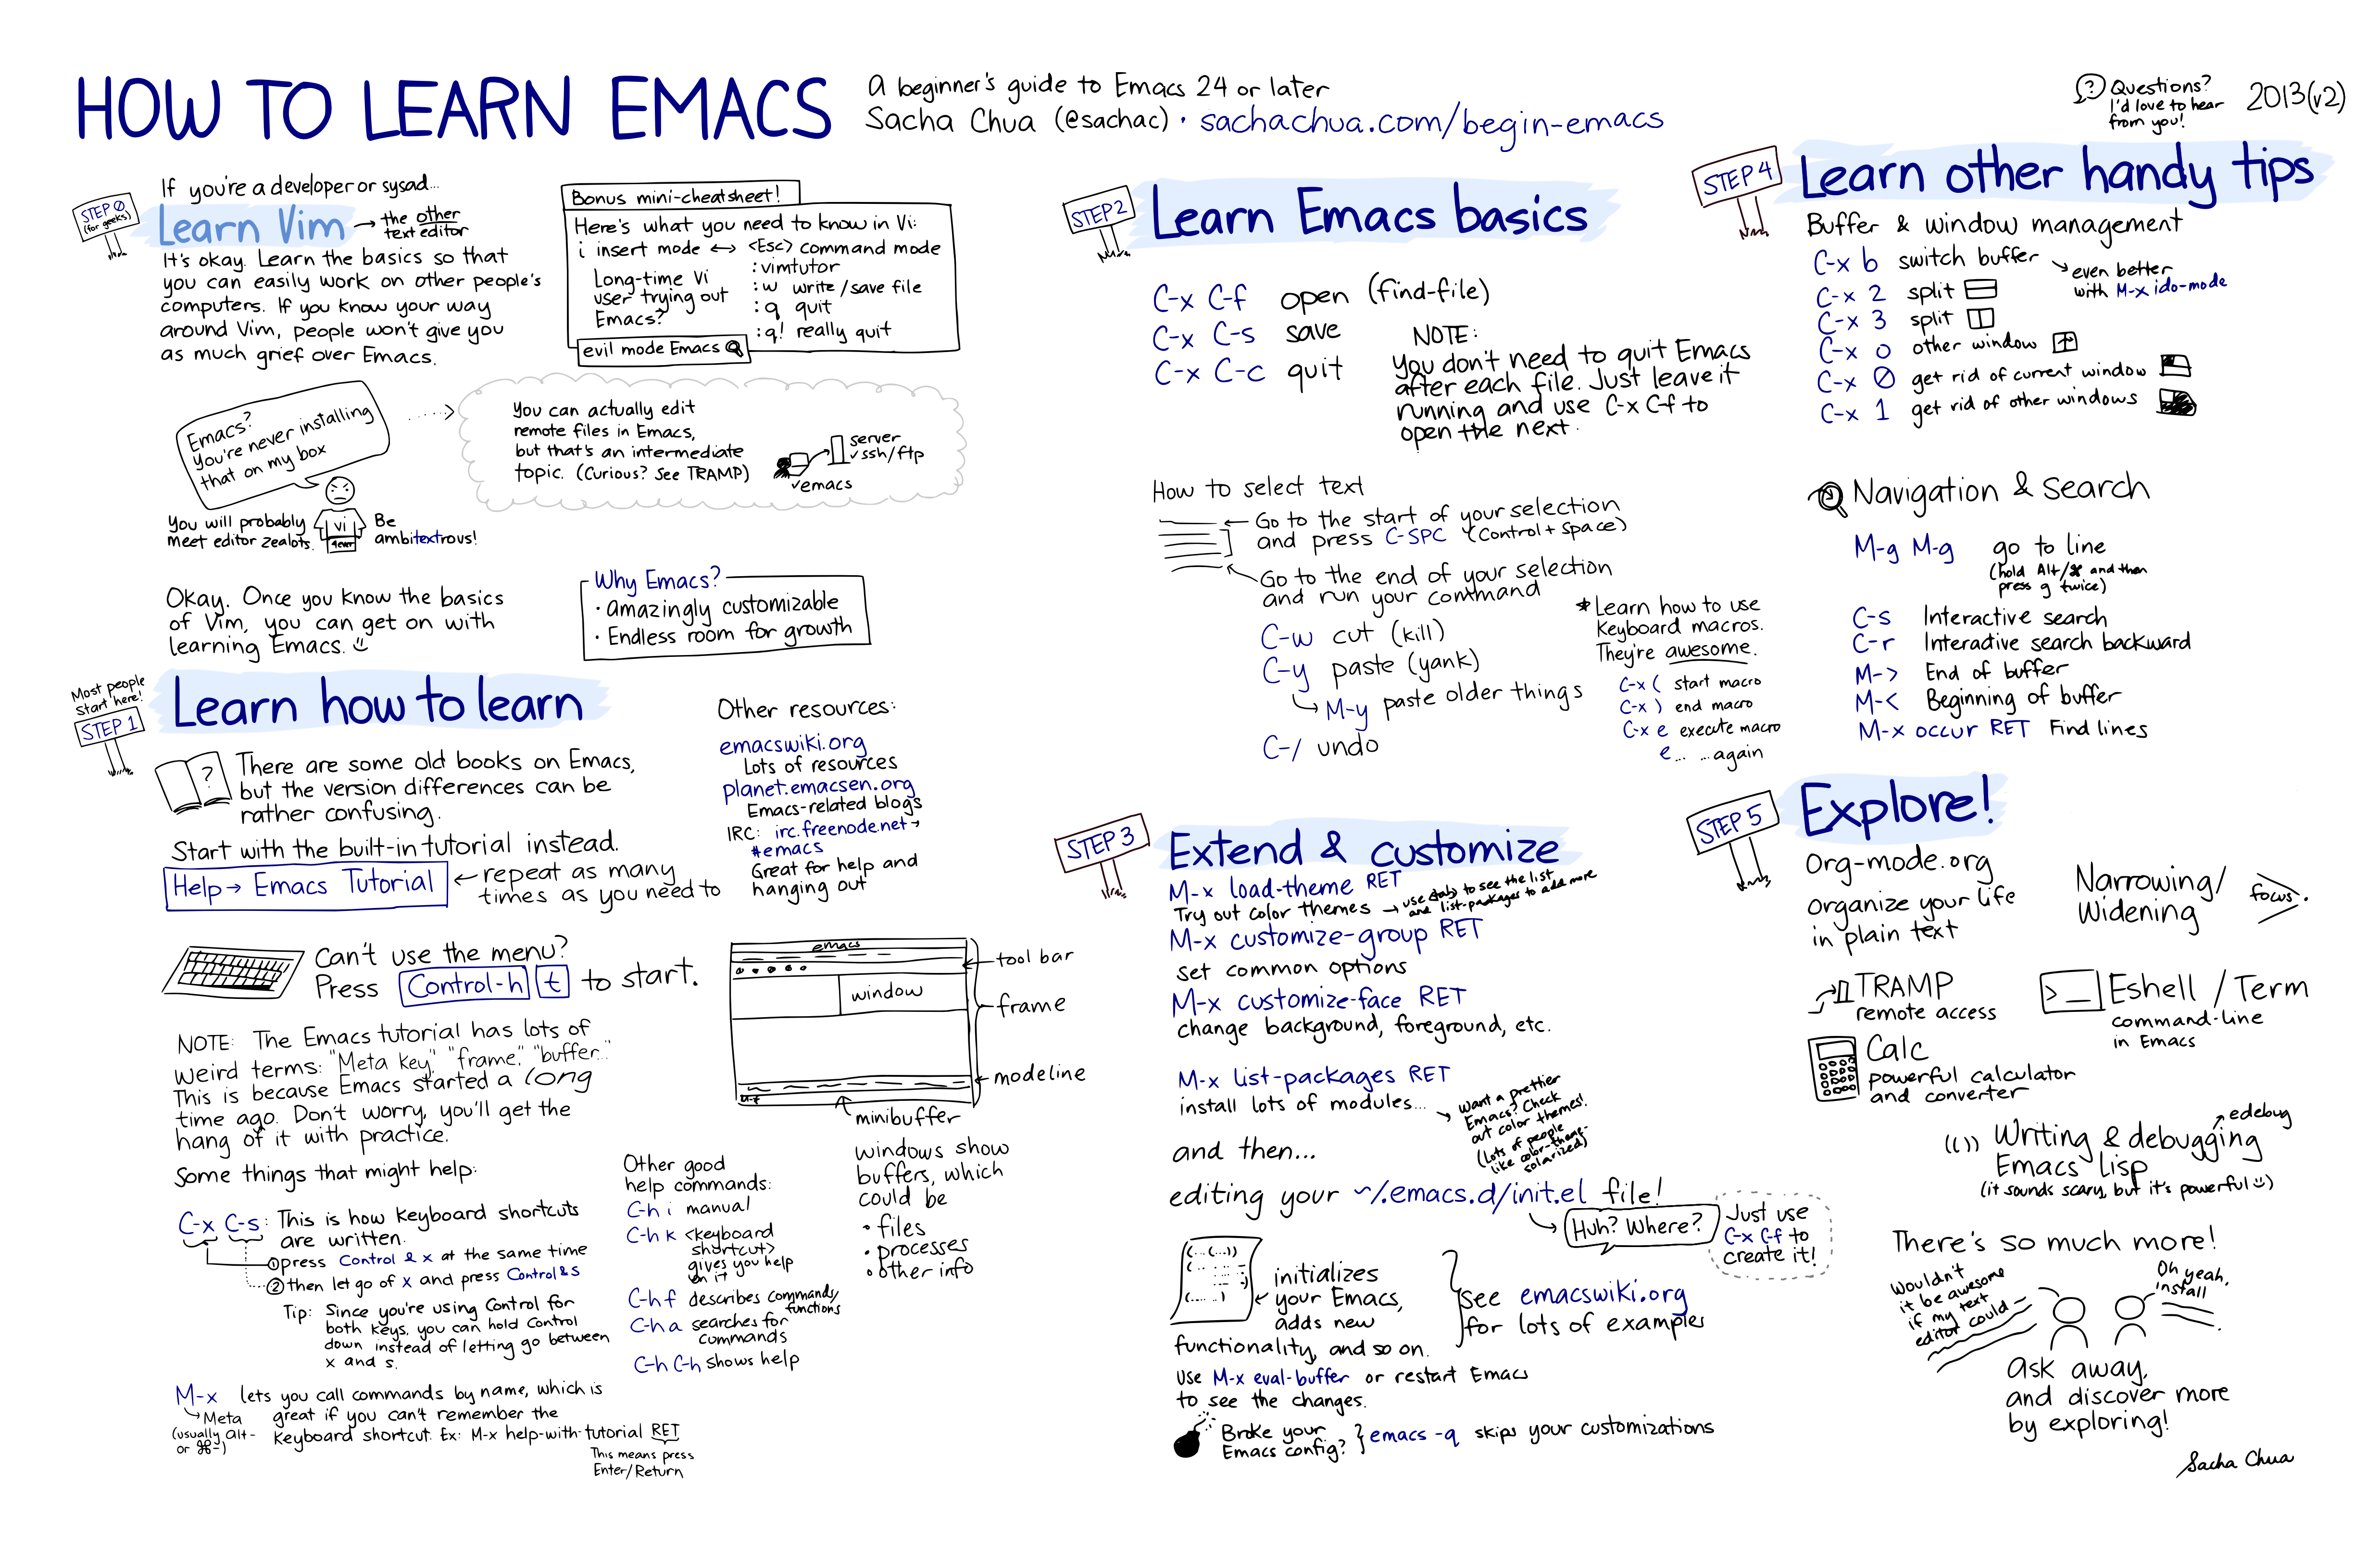 How-to-Learn-Emacs-v2-Large.png